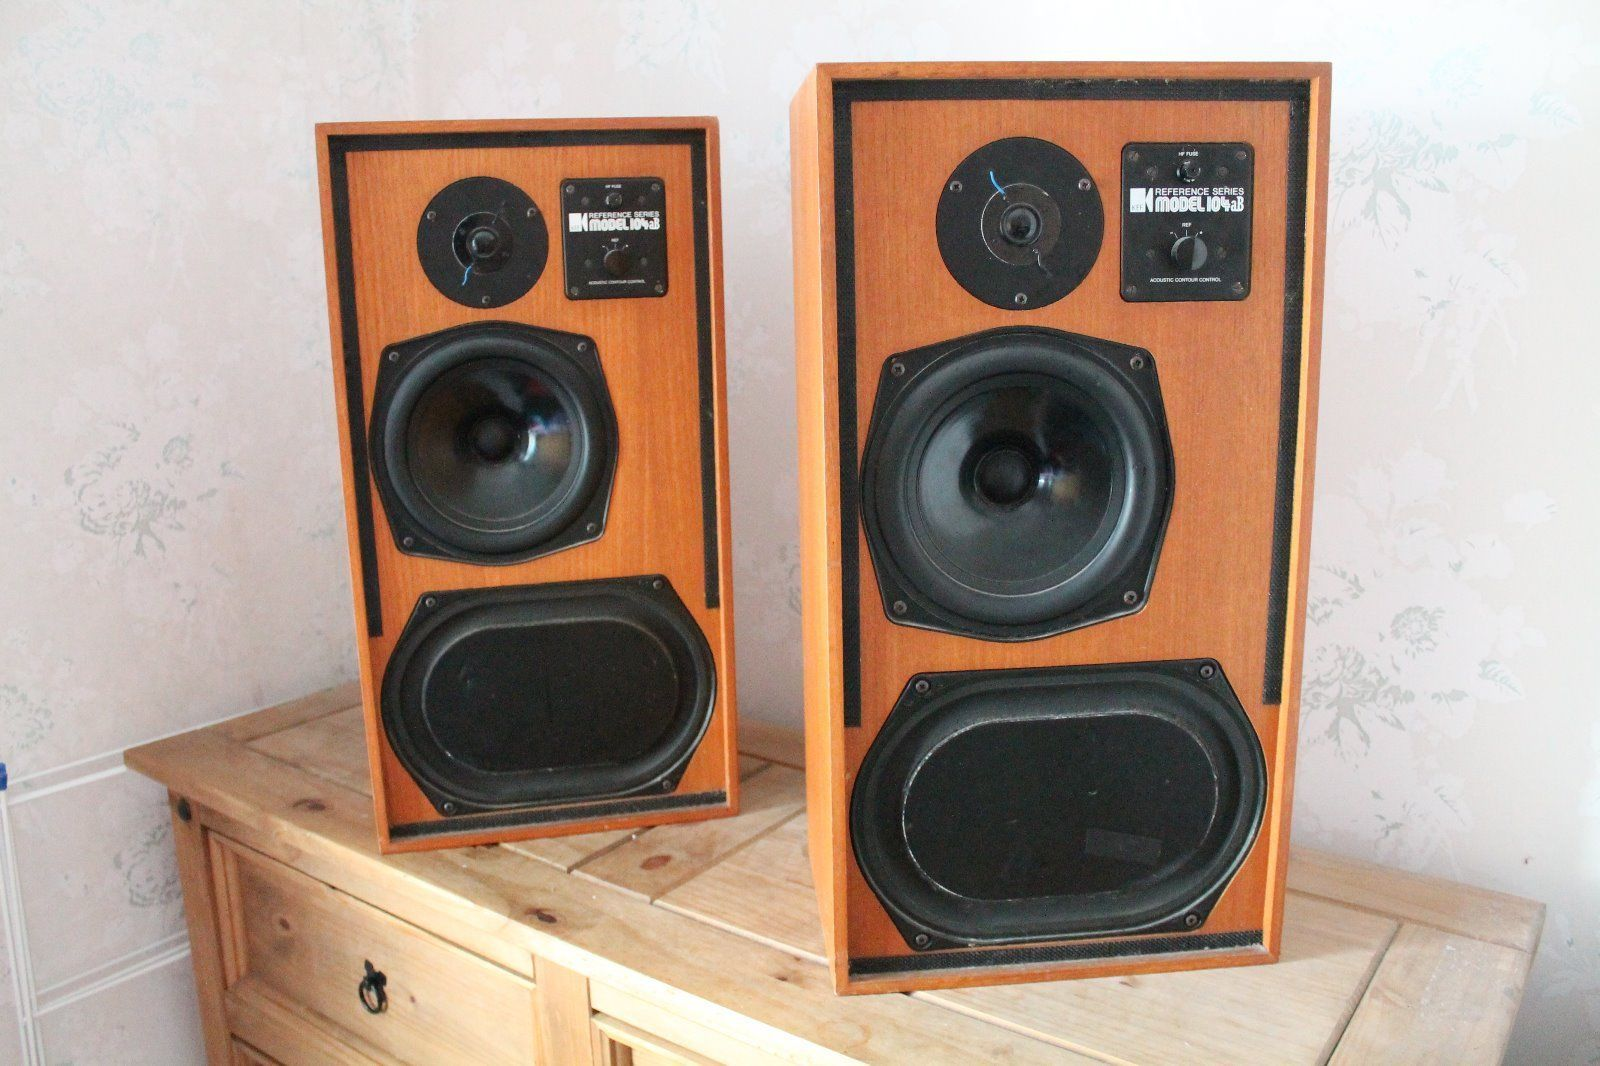 Kef 104ab http://www.kef.com/html/us/explore/about_kef/museum/1970s/Reference_Series_104/index.html